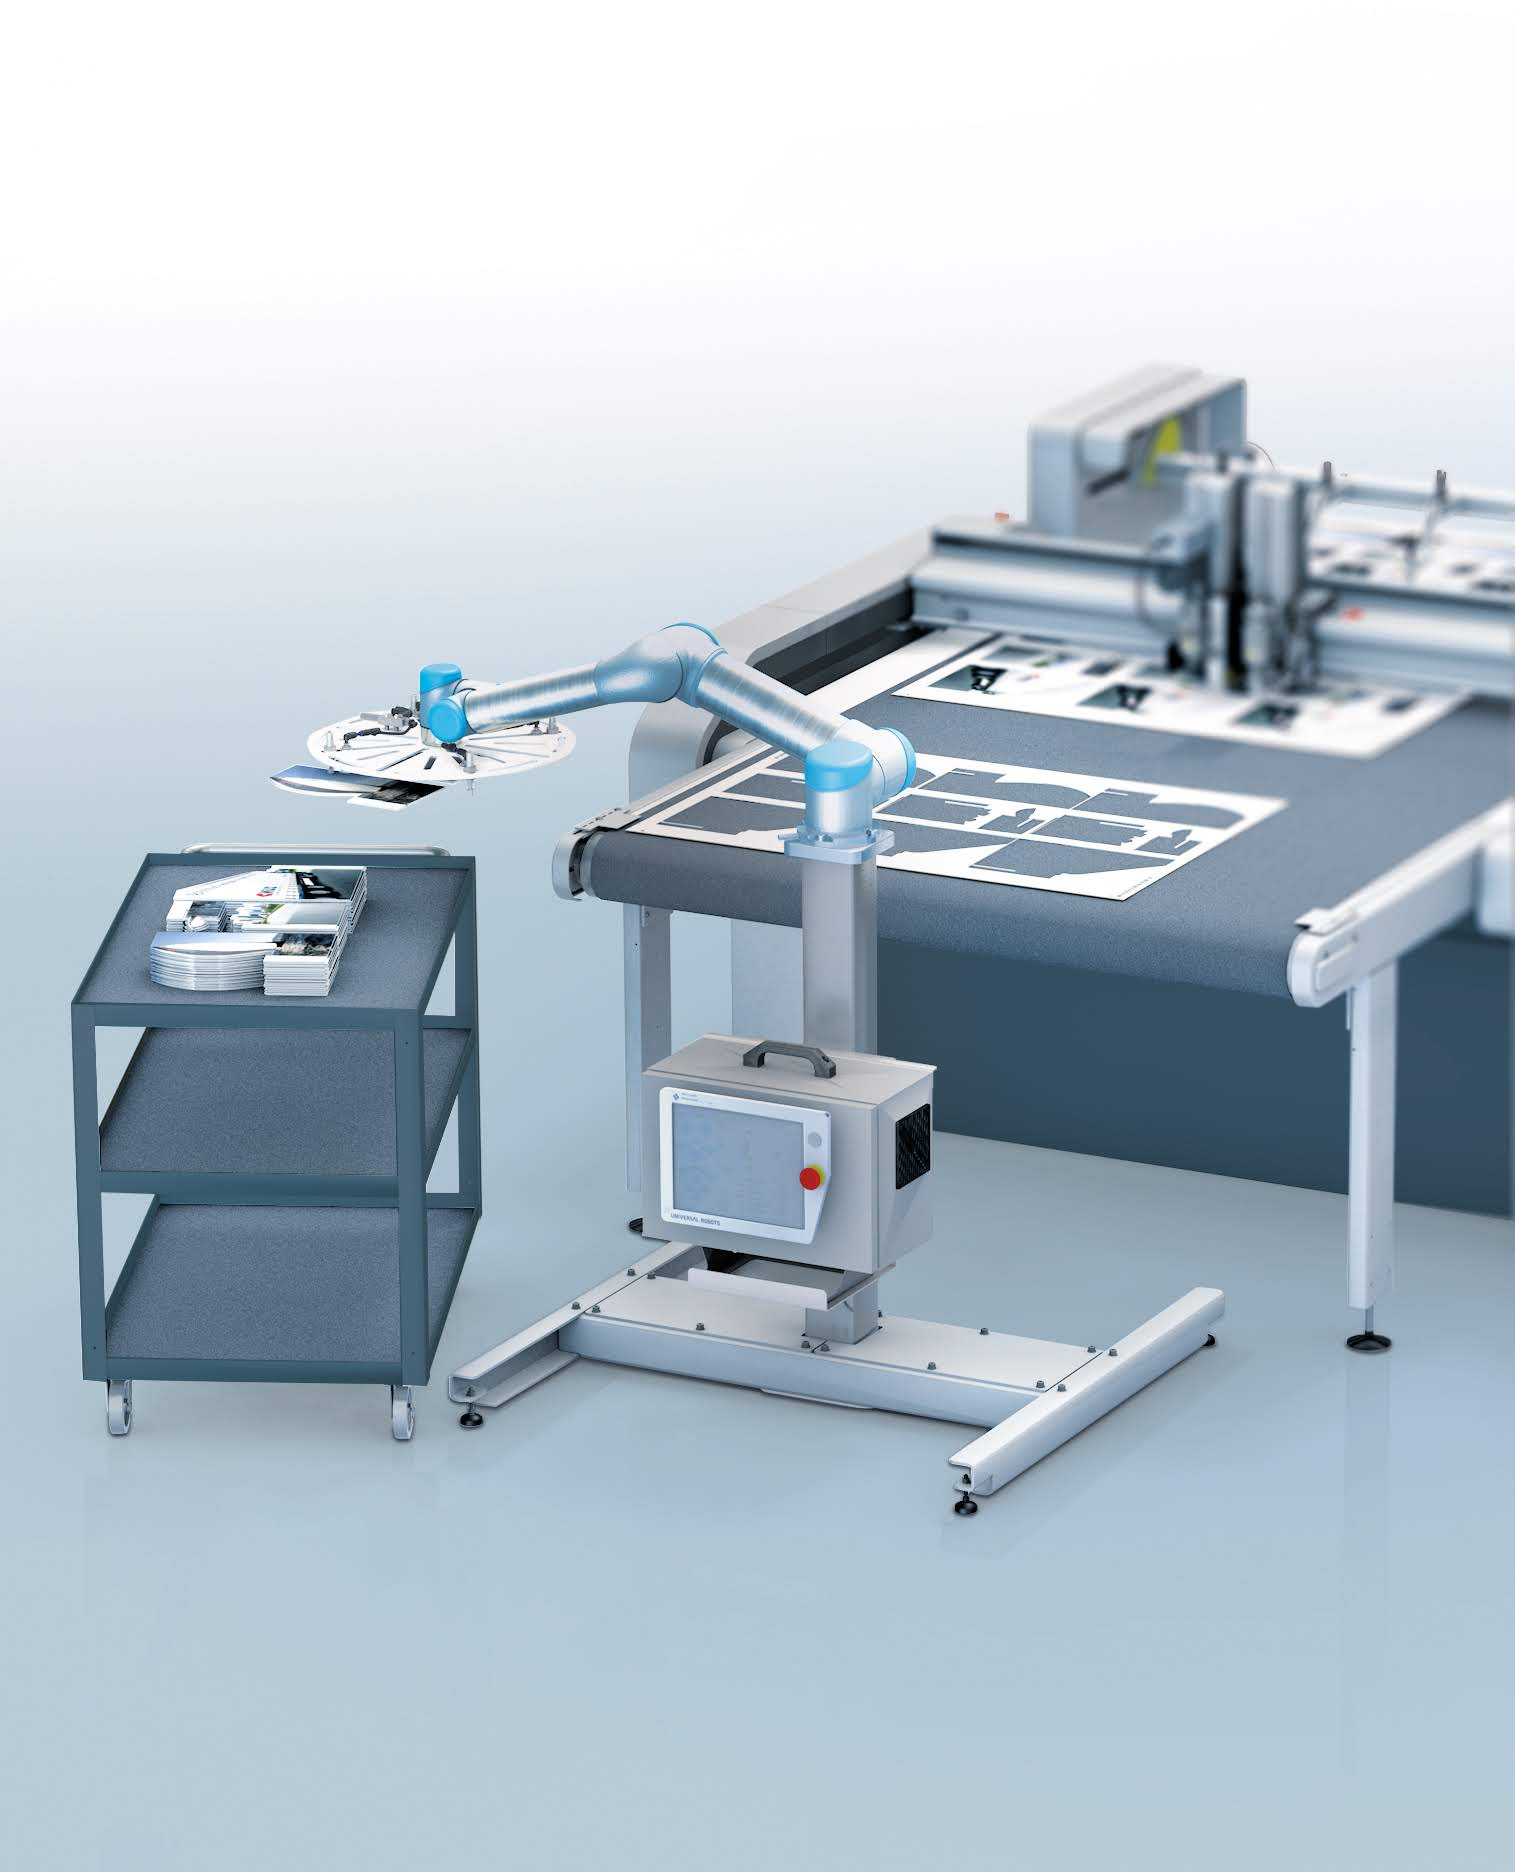 Automation is helping advance cutting and routing technologies.